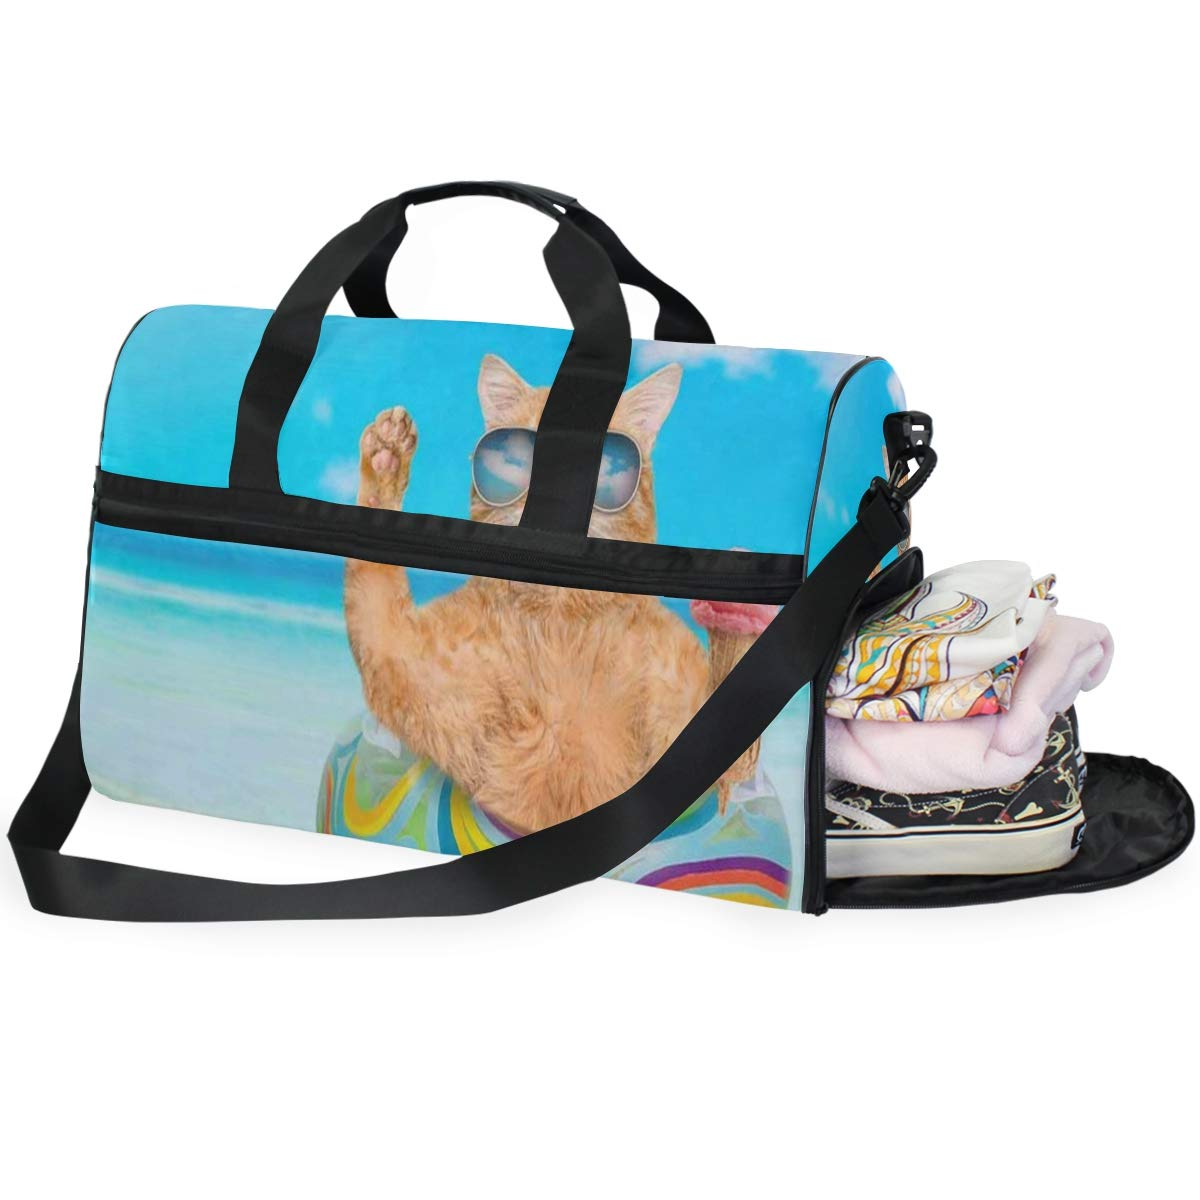 Cats Abstract Large Canvas shoulder bag with Shoe Compartment Travel Tote Luggage Weekender Duffle Bag